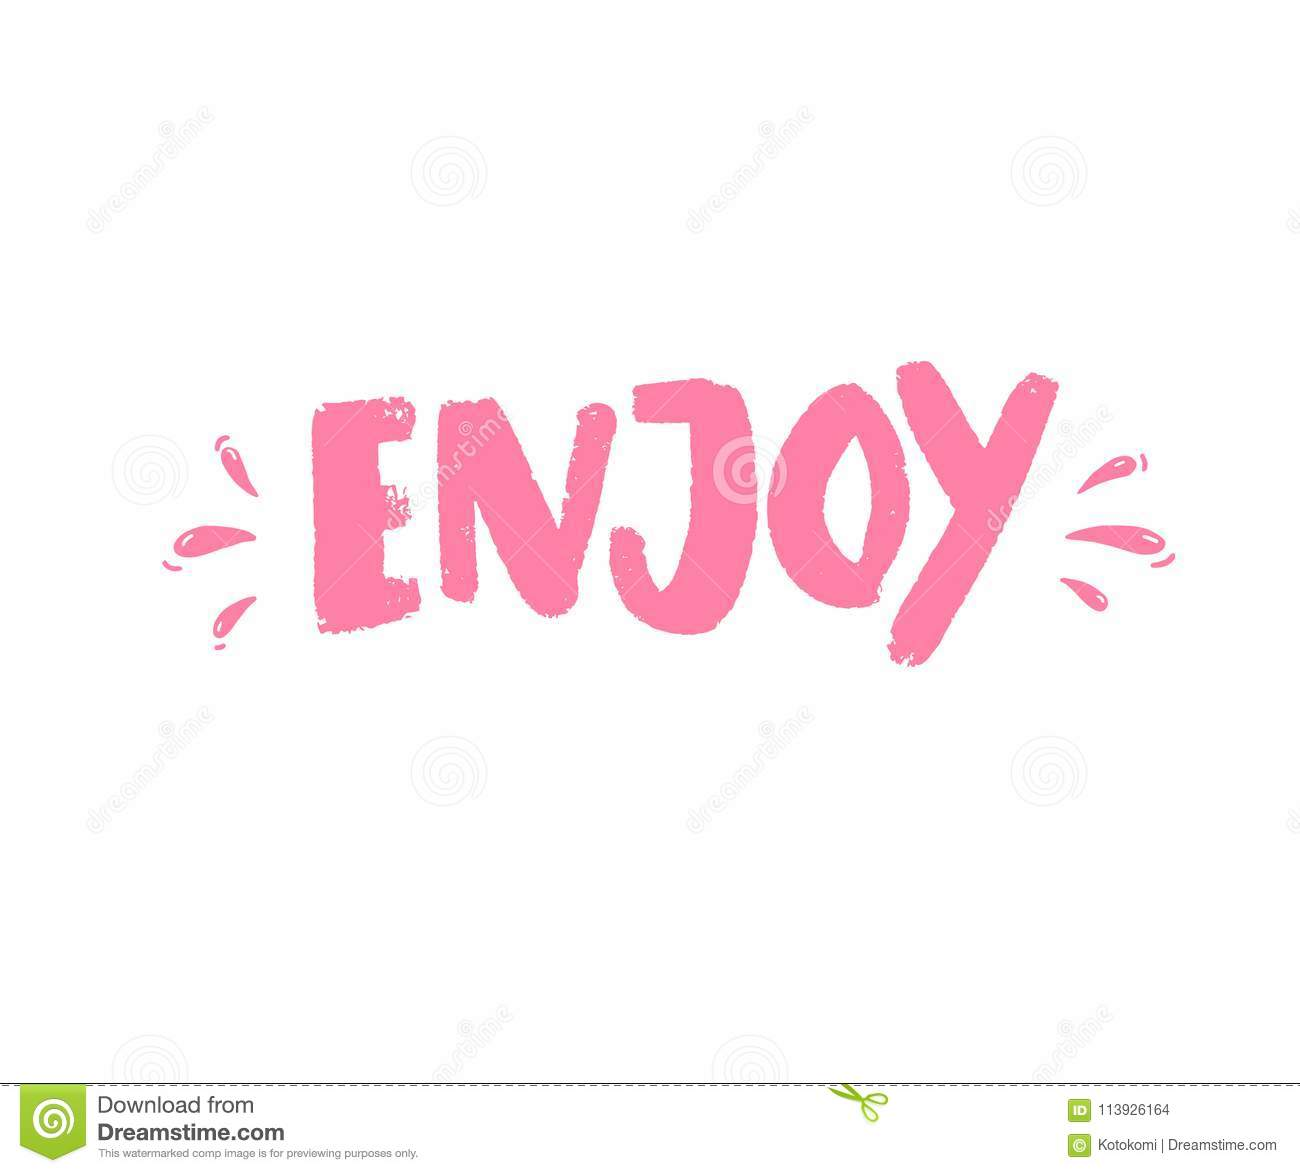 enjoy handwritten word brush